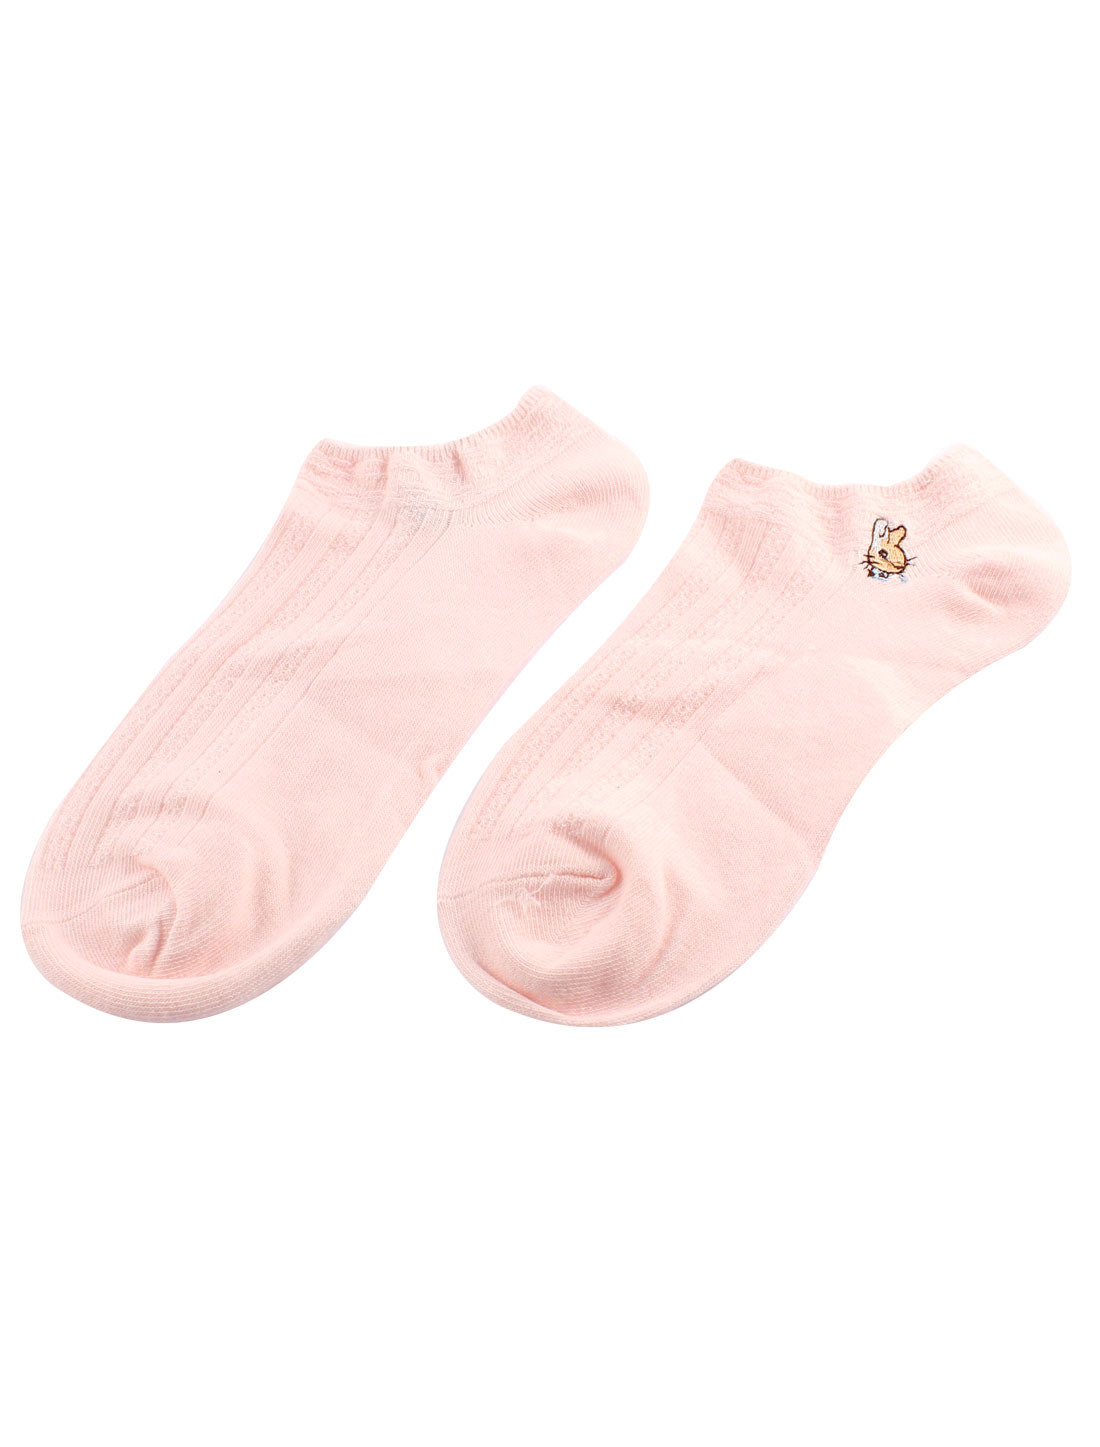 Stretchy Cotton Blends Squirrel Printed Cuff Short Low Cut Socks Pair for Lady Pink